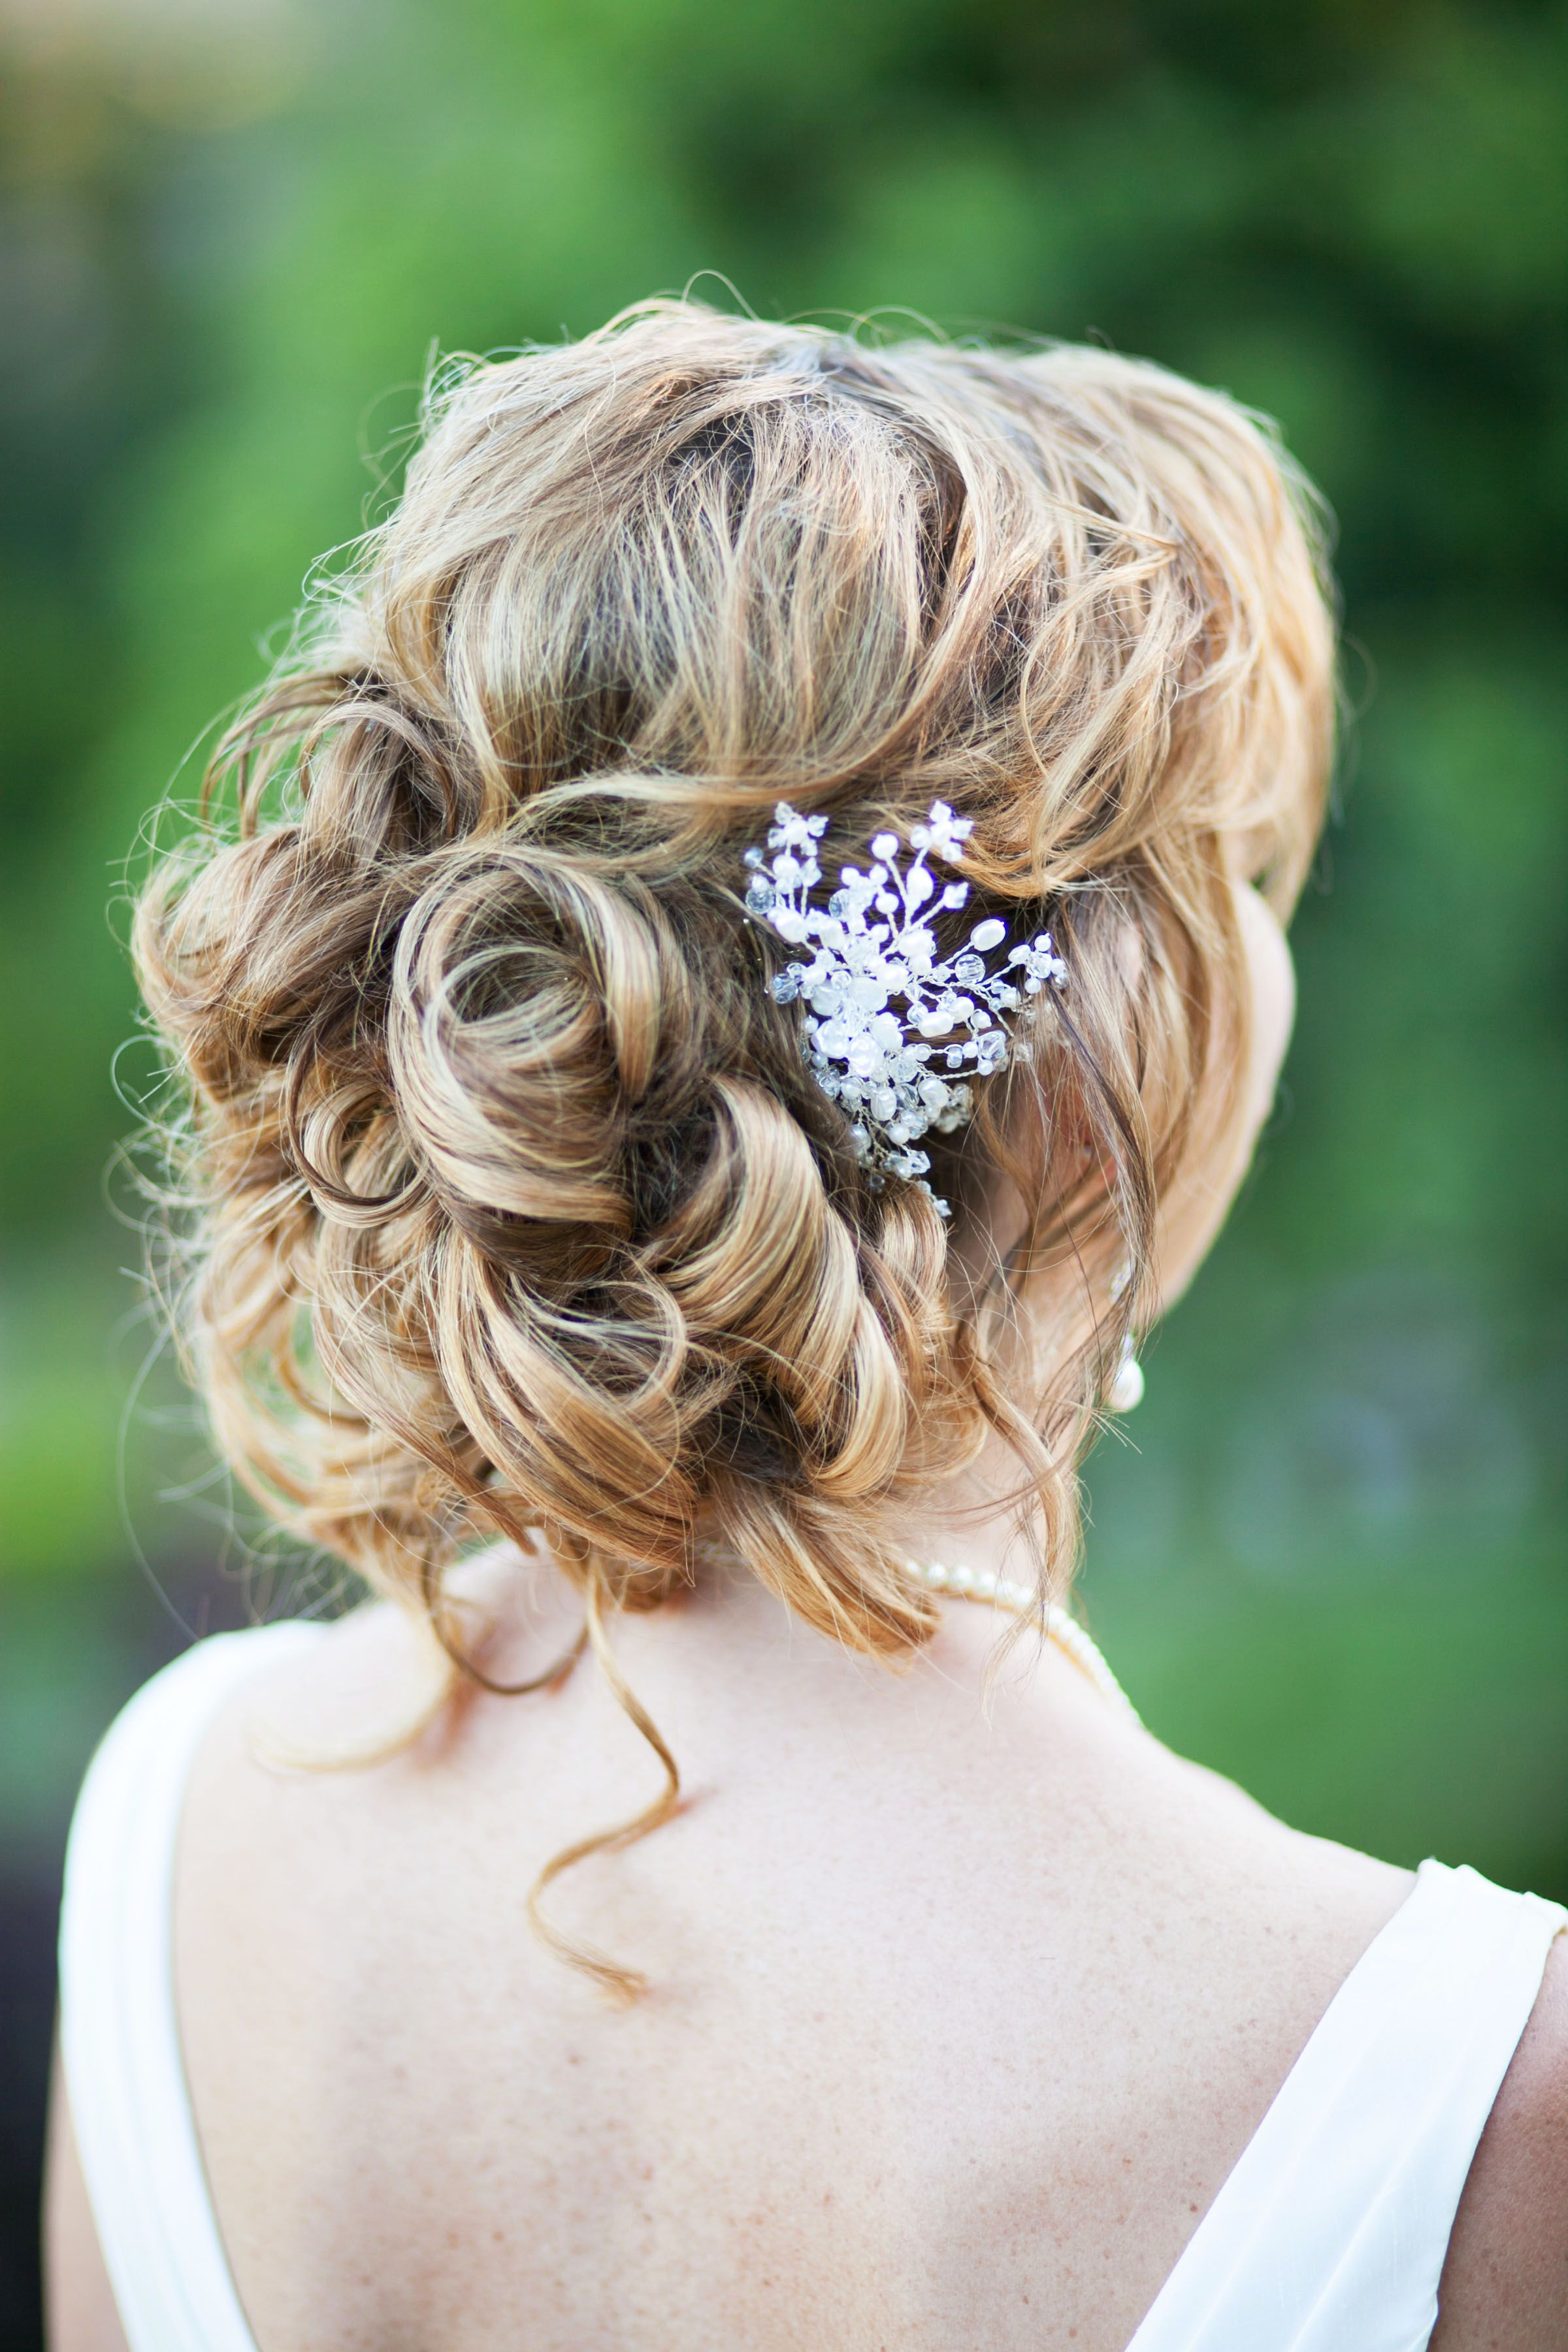 Pin On Wedding Beauty Hair Makeup